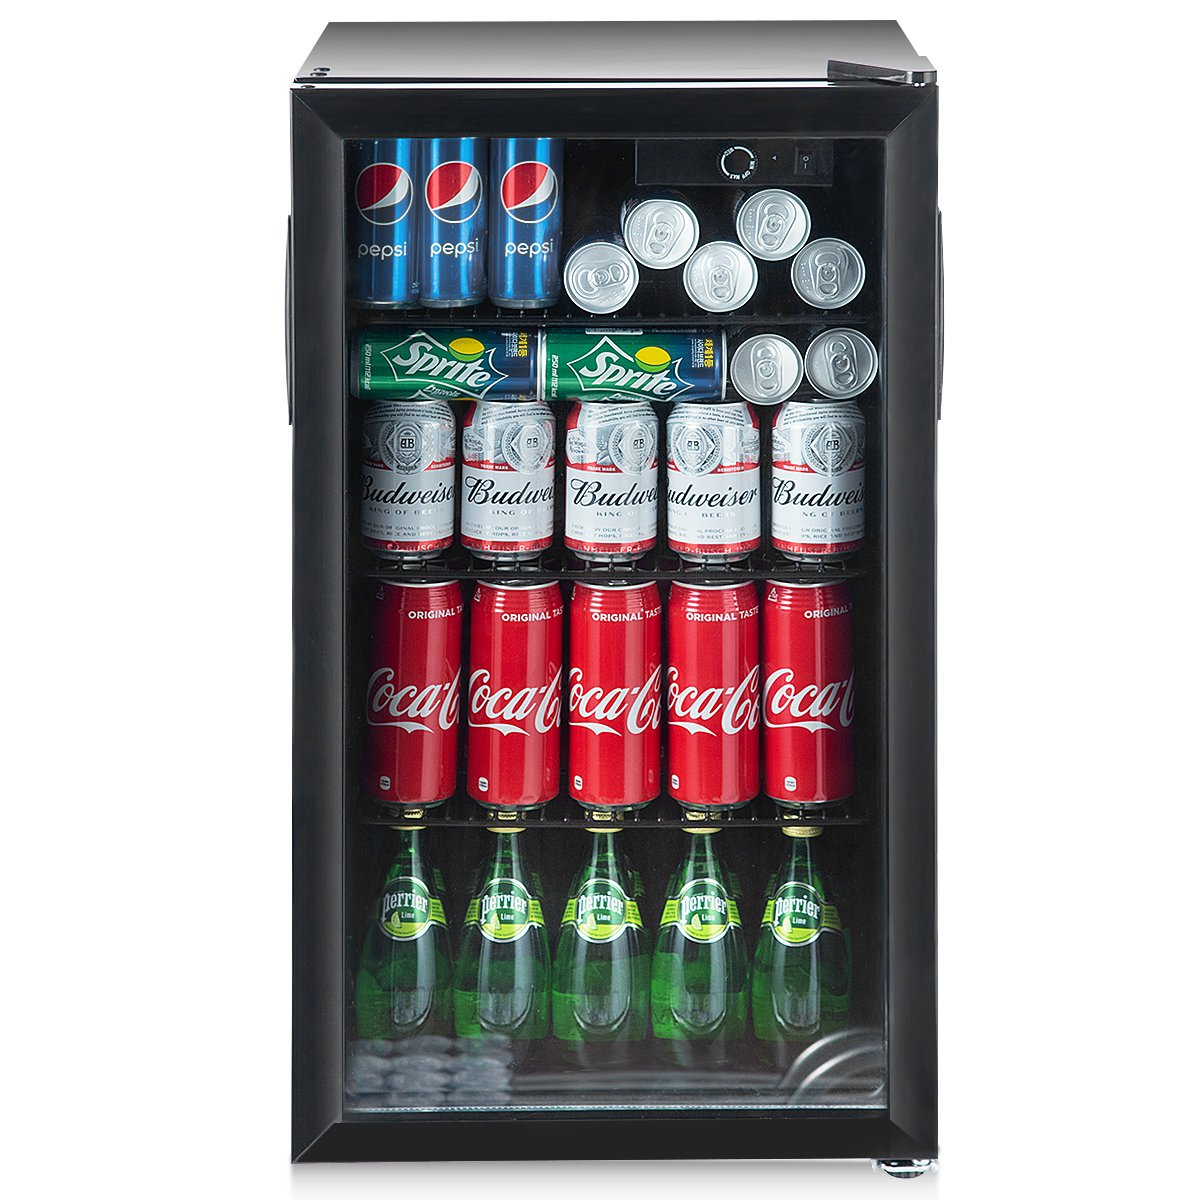 Costway 120 Can Beverage Refrigerator And Cooler Mini Fridge With